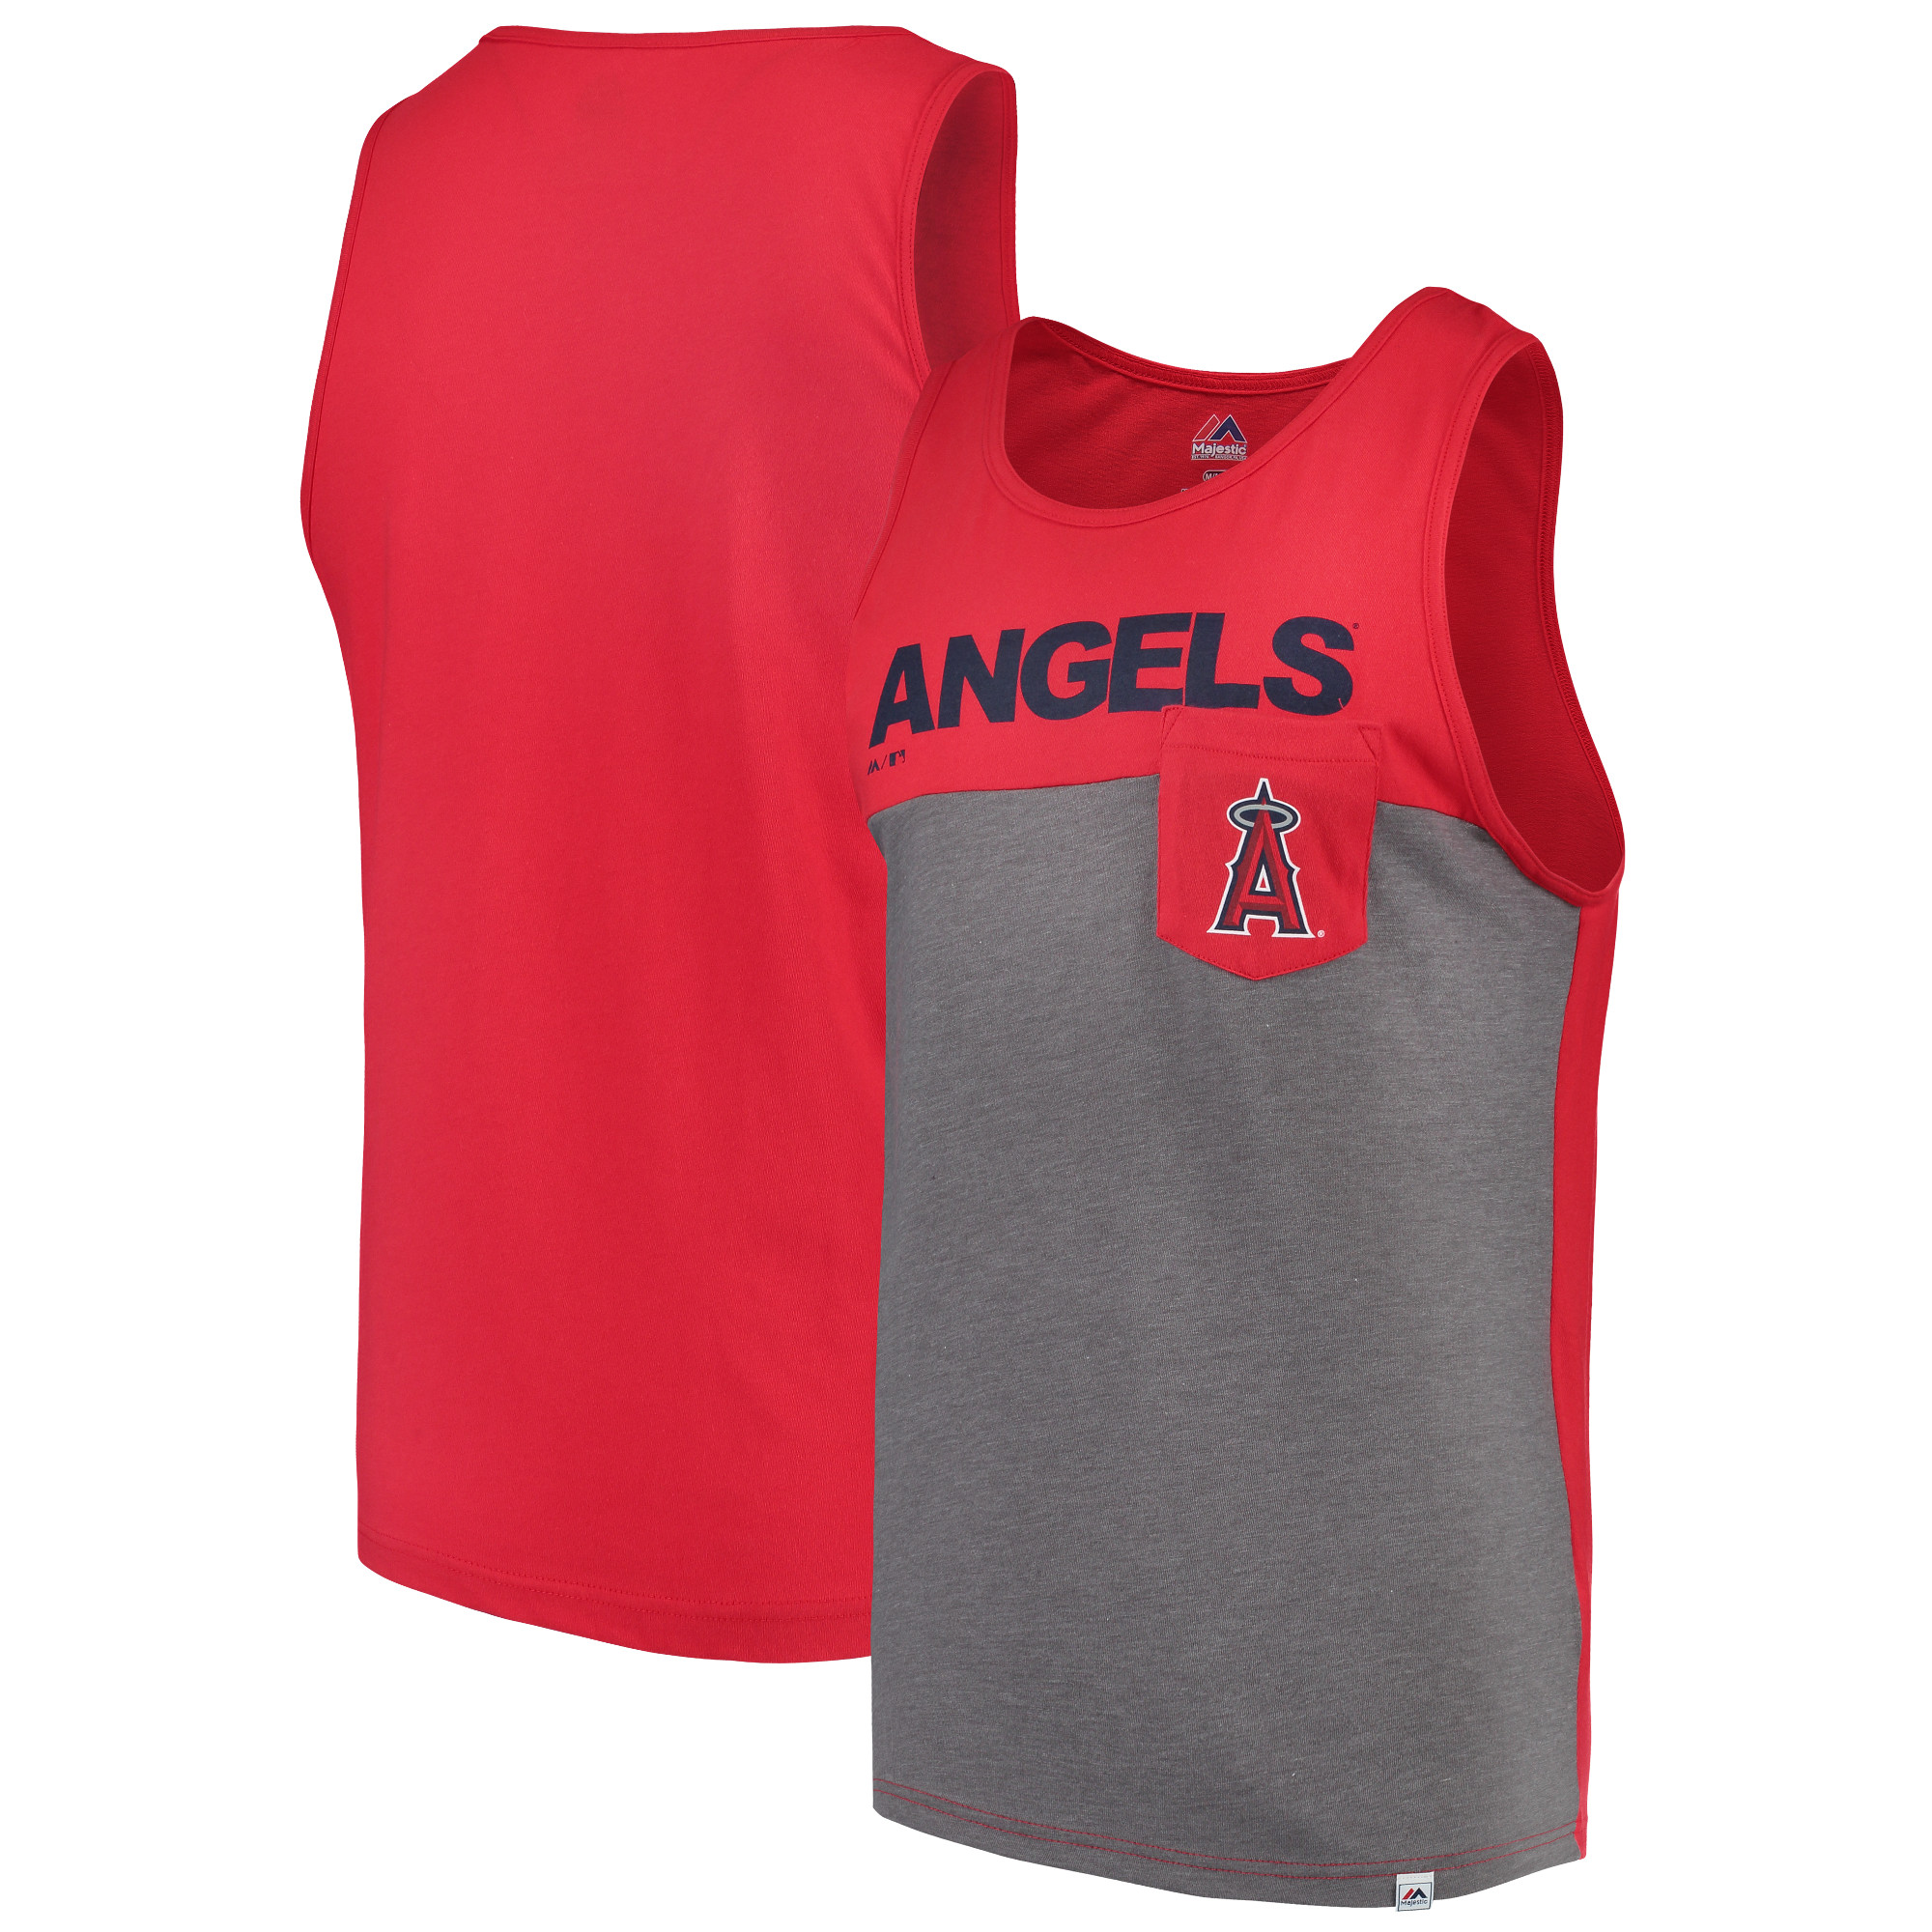 Los Angeles Angels Majestic Throw the Towel Pocket Tank Top - Red/Gray